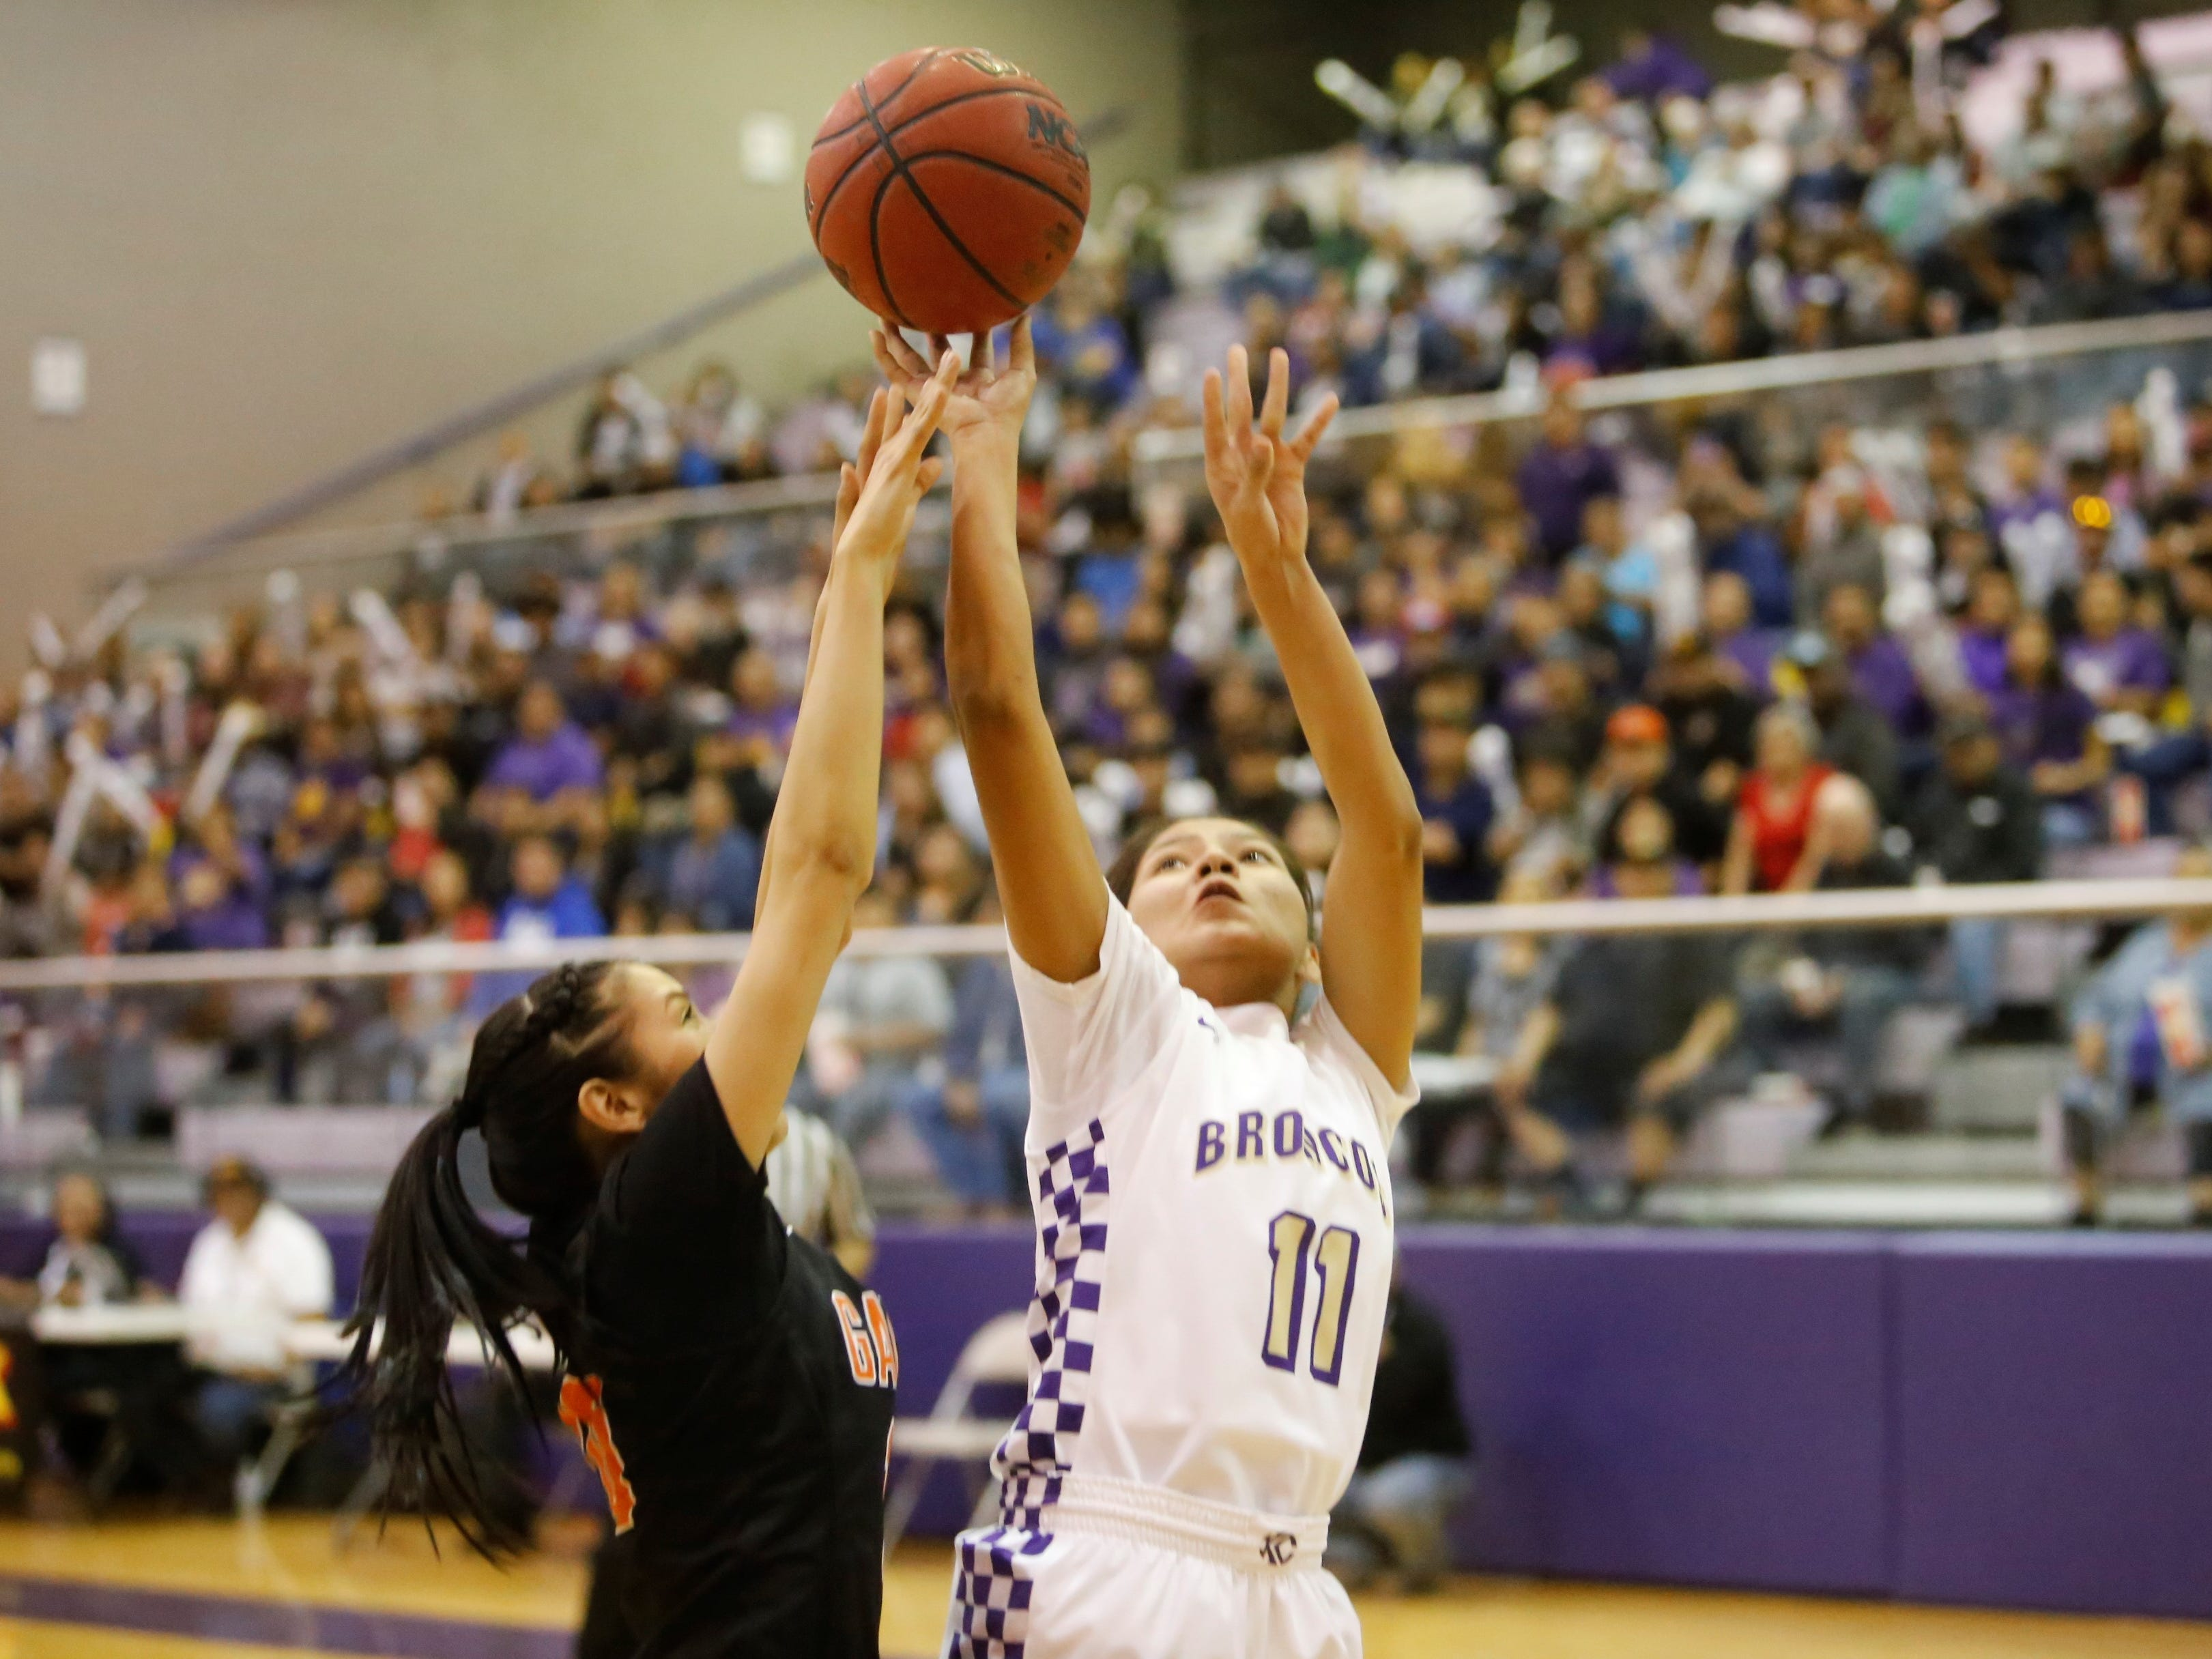 Kirtland Central's Melanie Yazzie makes a basket against Gallup during Friday's District 1-4A tournament championship game at Bronco Arena.